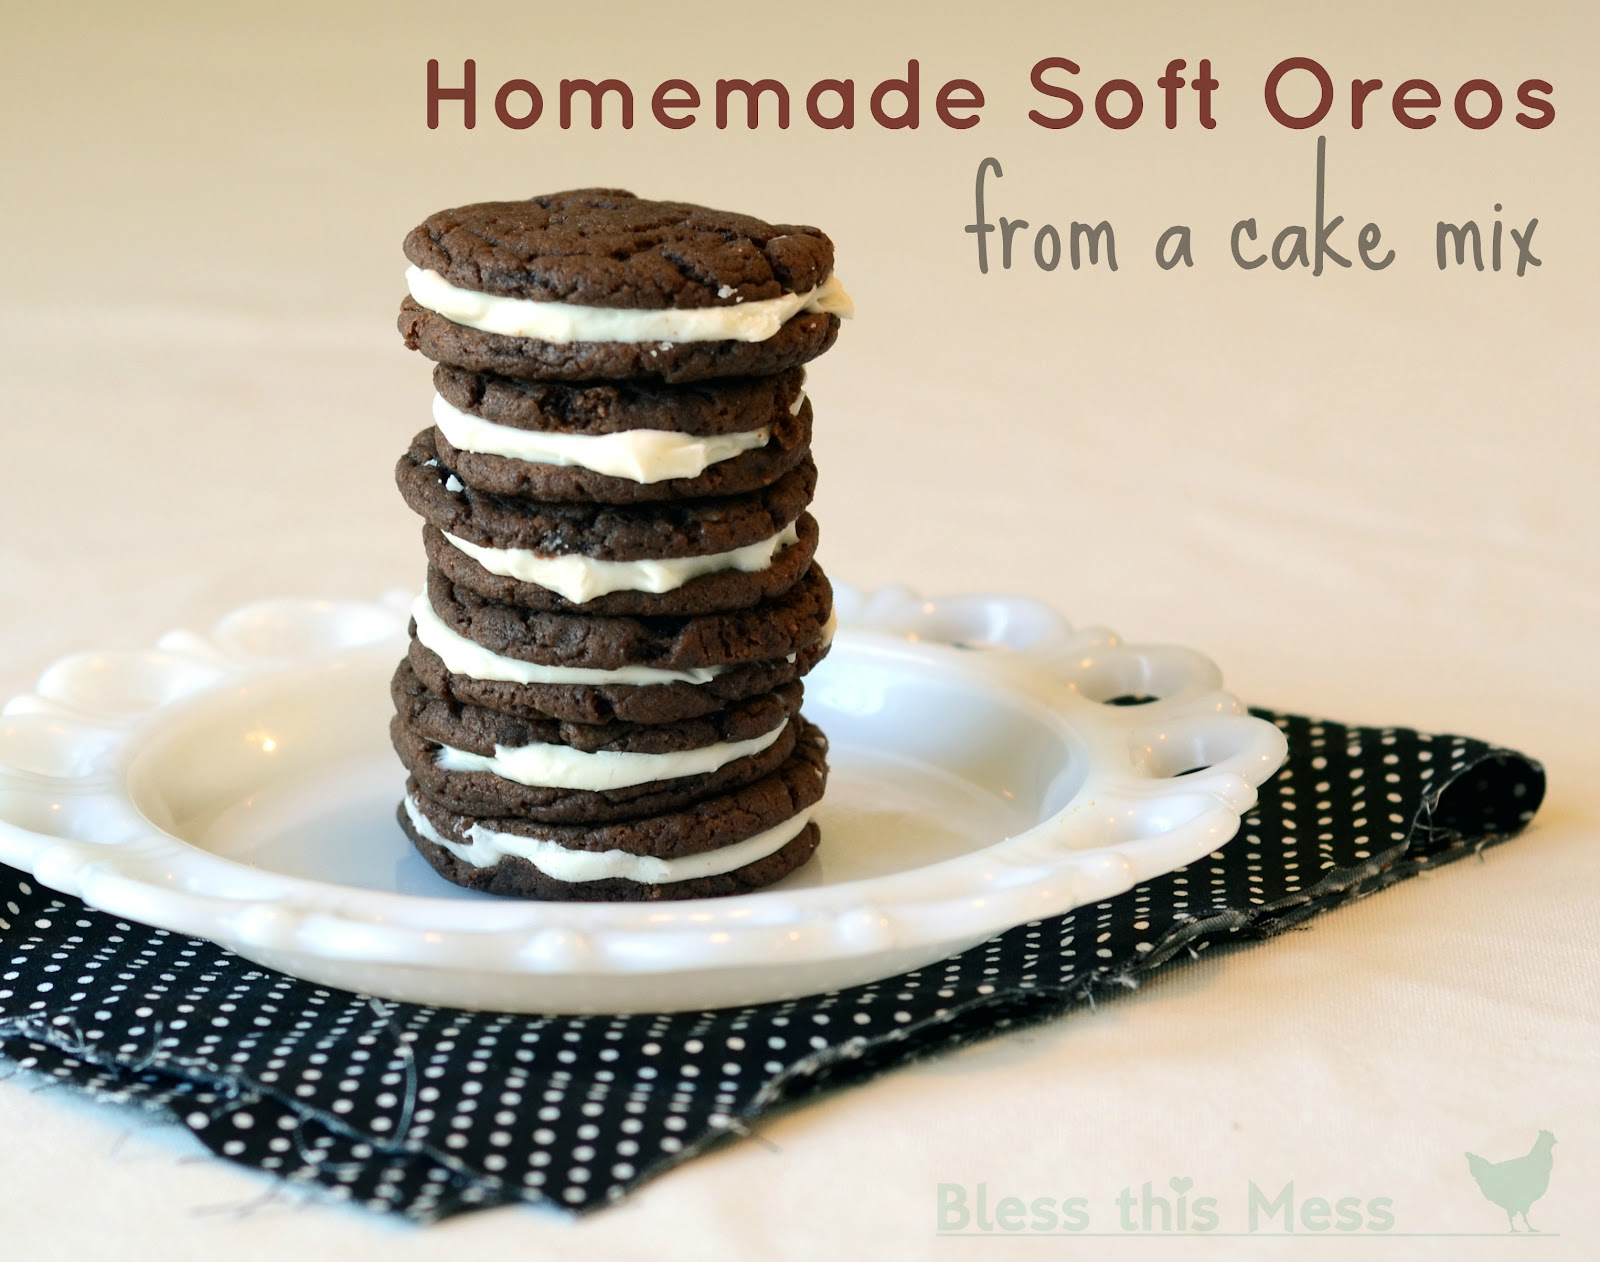 ... oreos . You can't really go wrong with a homemade oreo, soft or